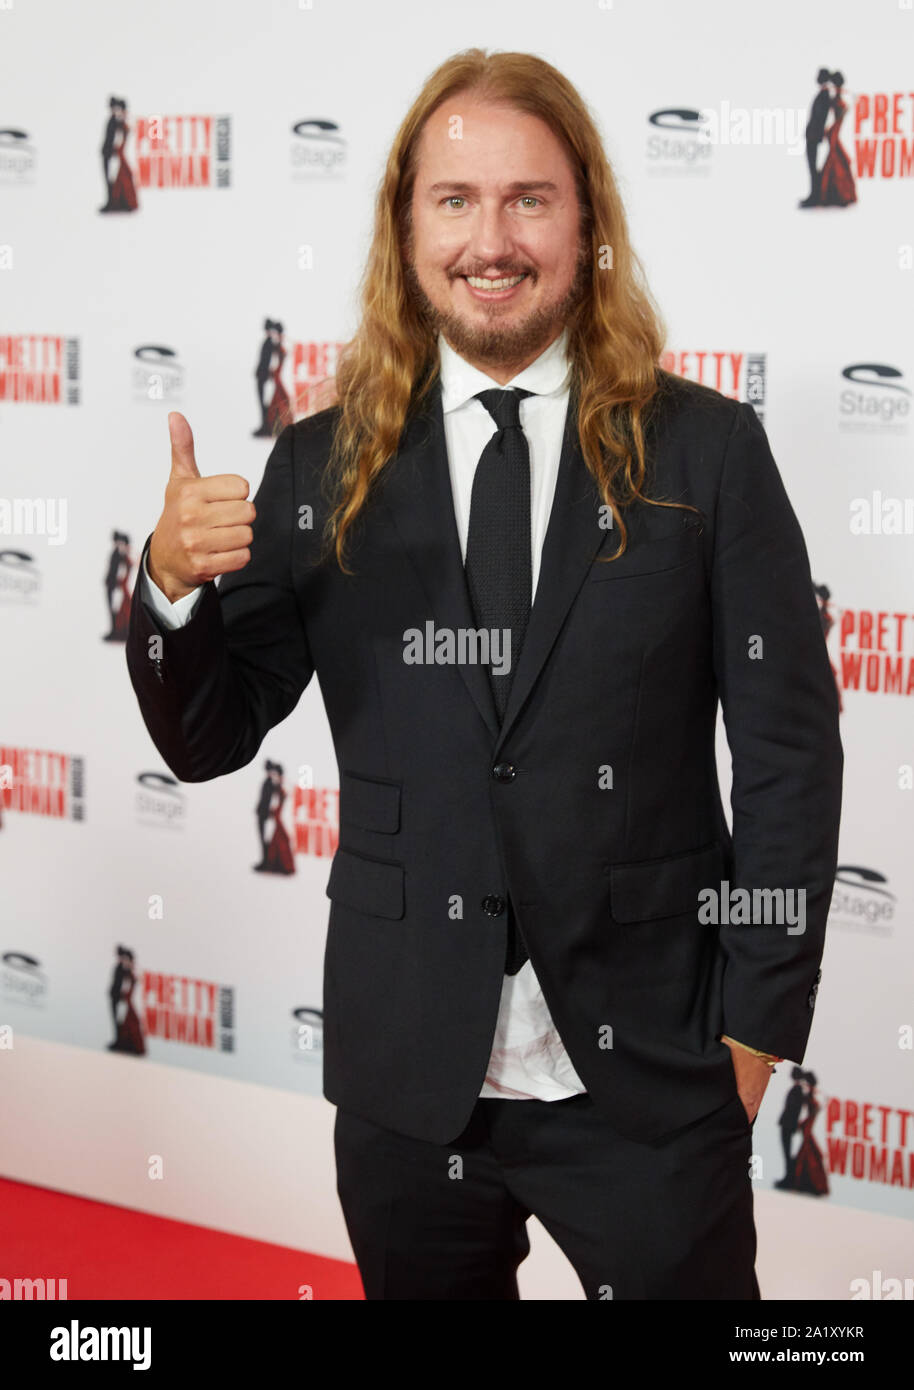 Roy Orbison Jr High Resolution Stock Photography And Images Alamy